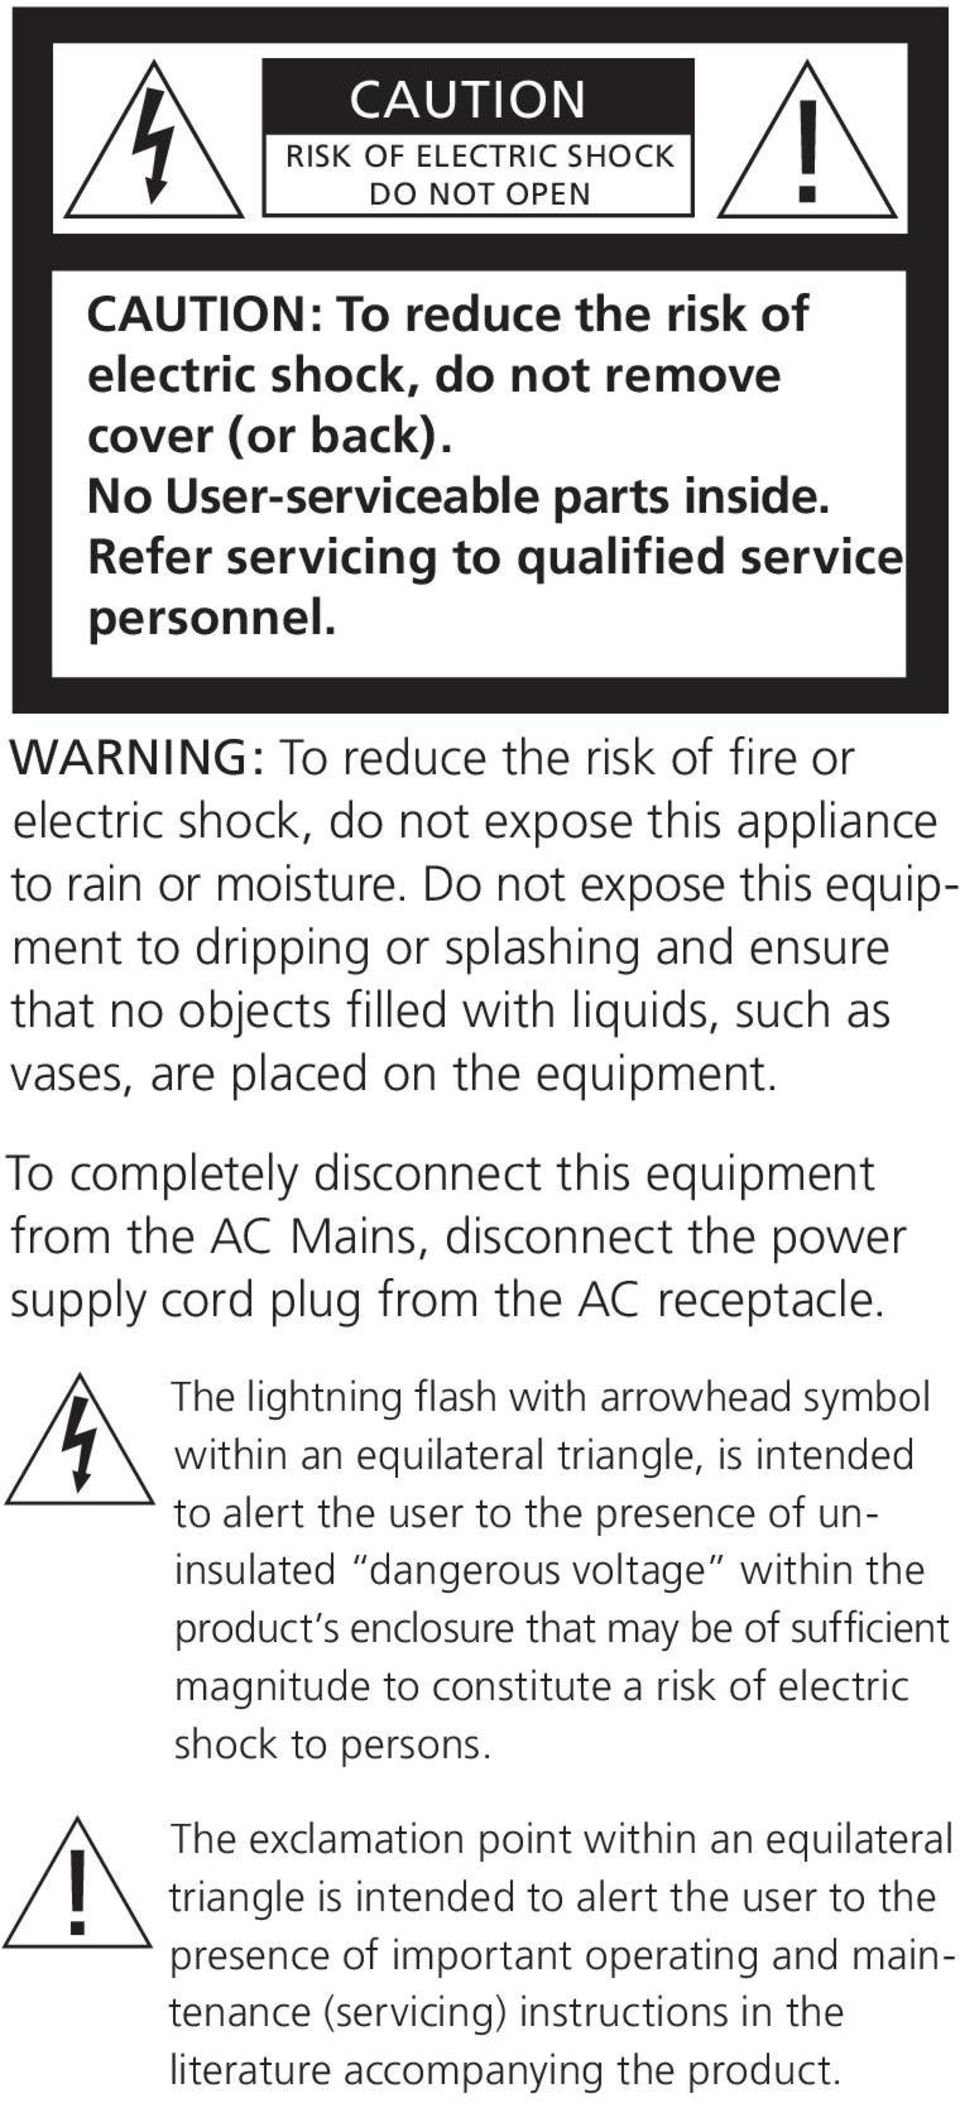 Do not expose this equipment to dripping or splashing and ensure that no objects filled with liquids, such as vases, are placed on the equipment.